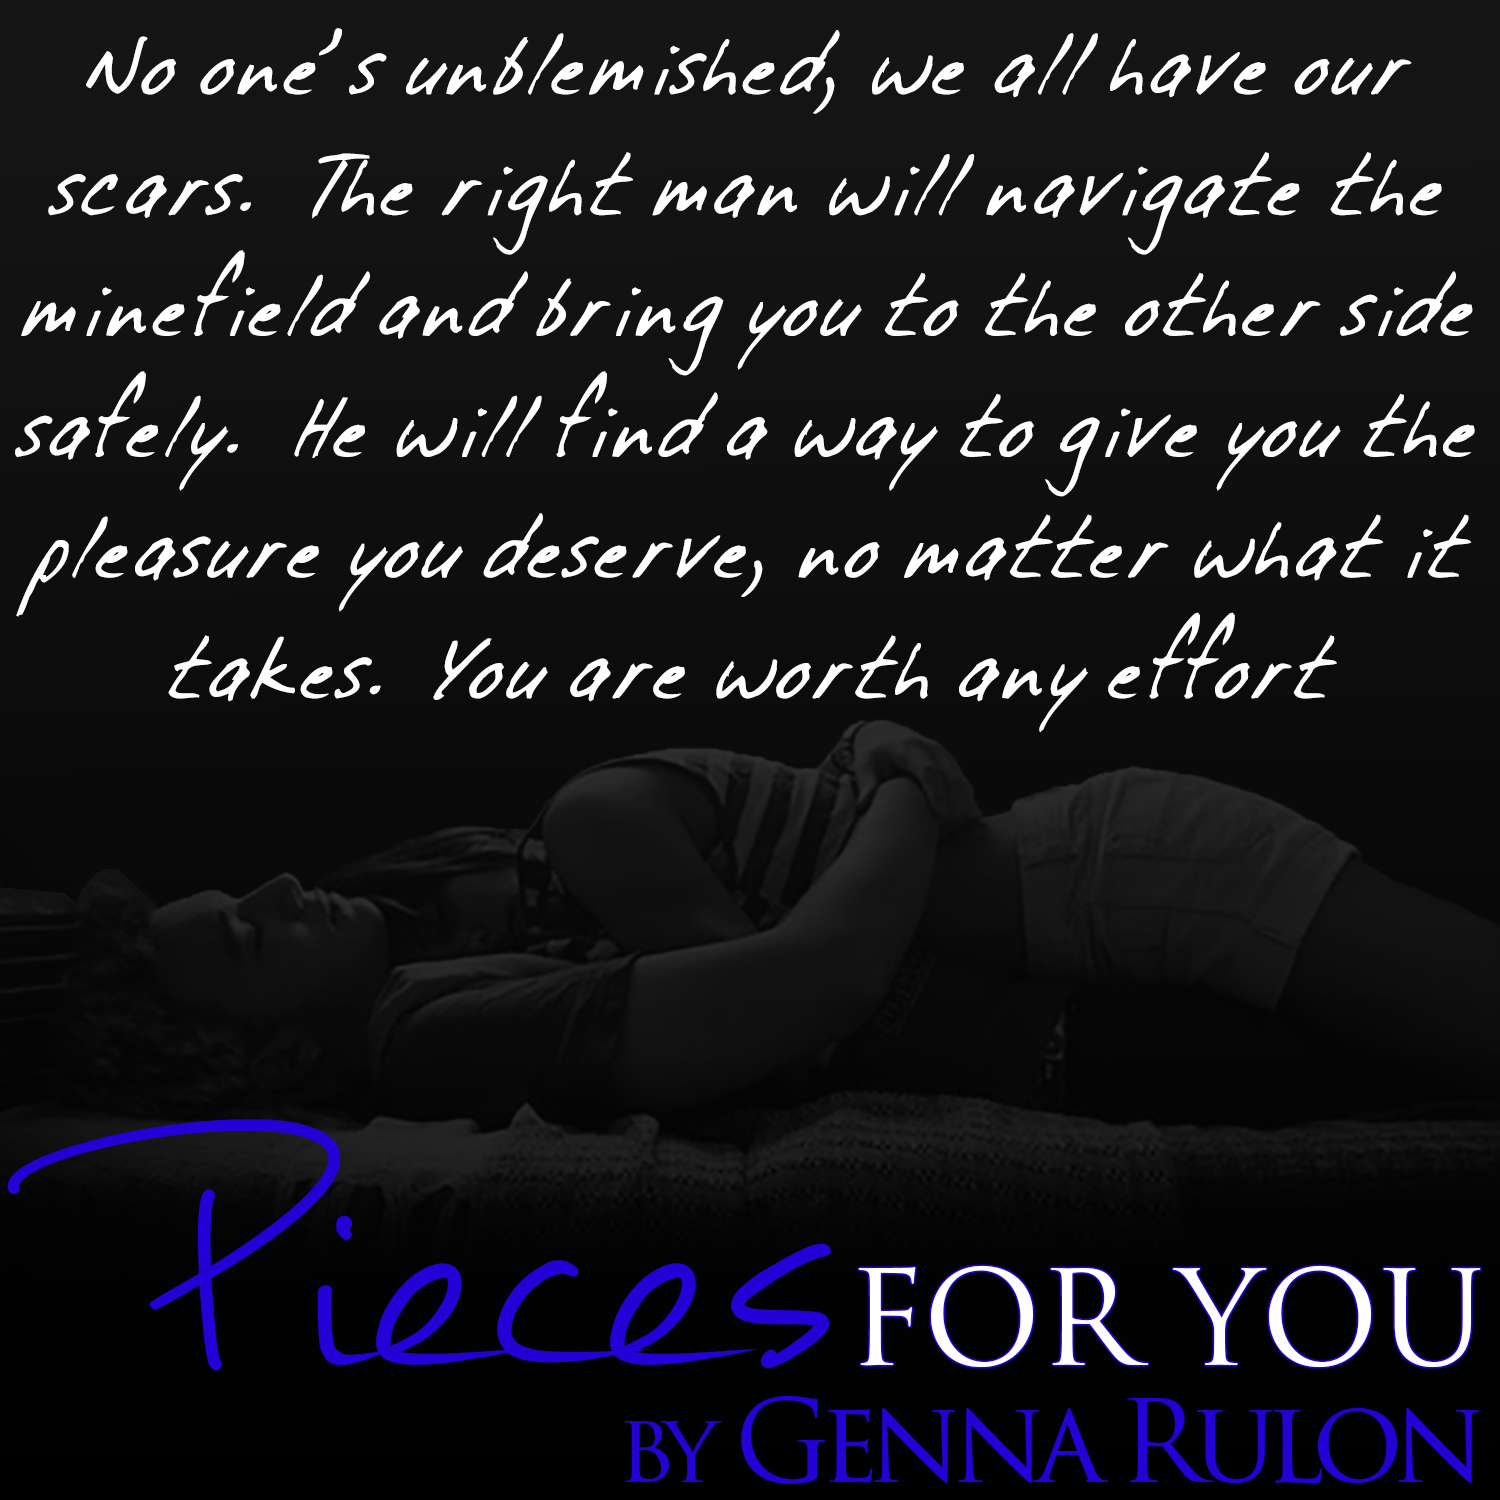 Golf Love Quotes Pieces For You For You 2Genna Rulon  Book Blast